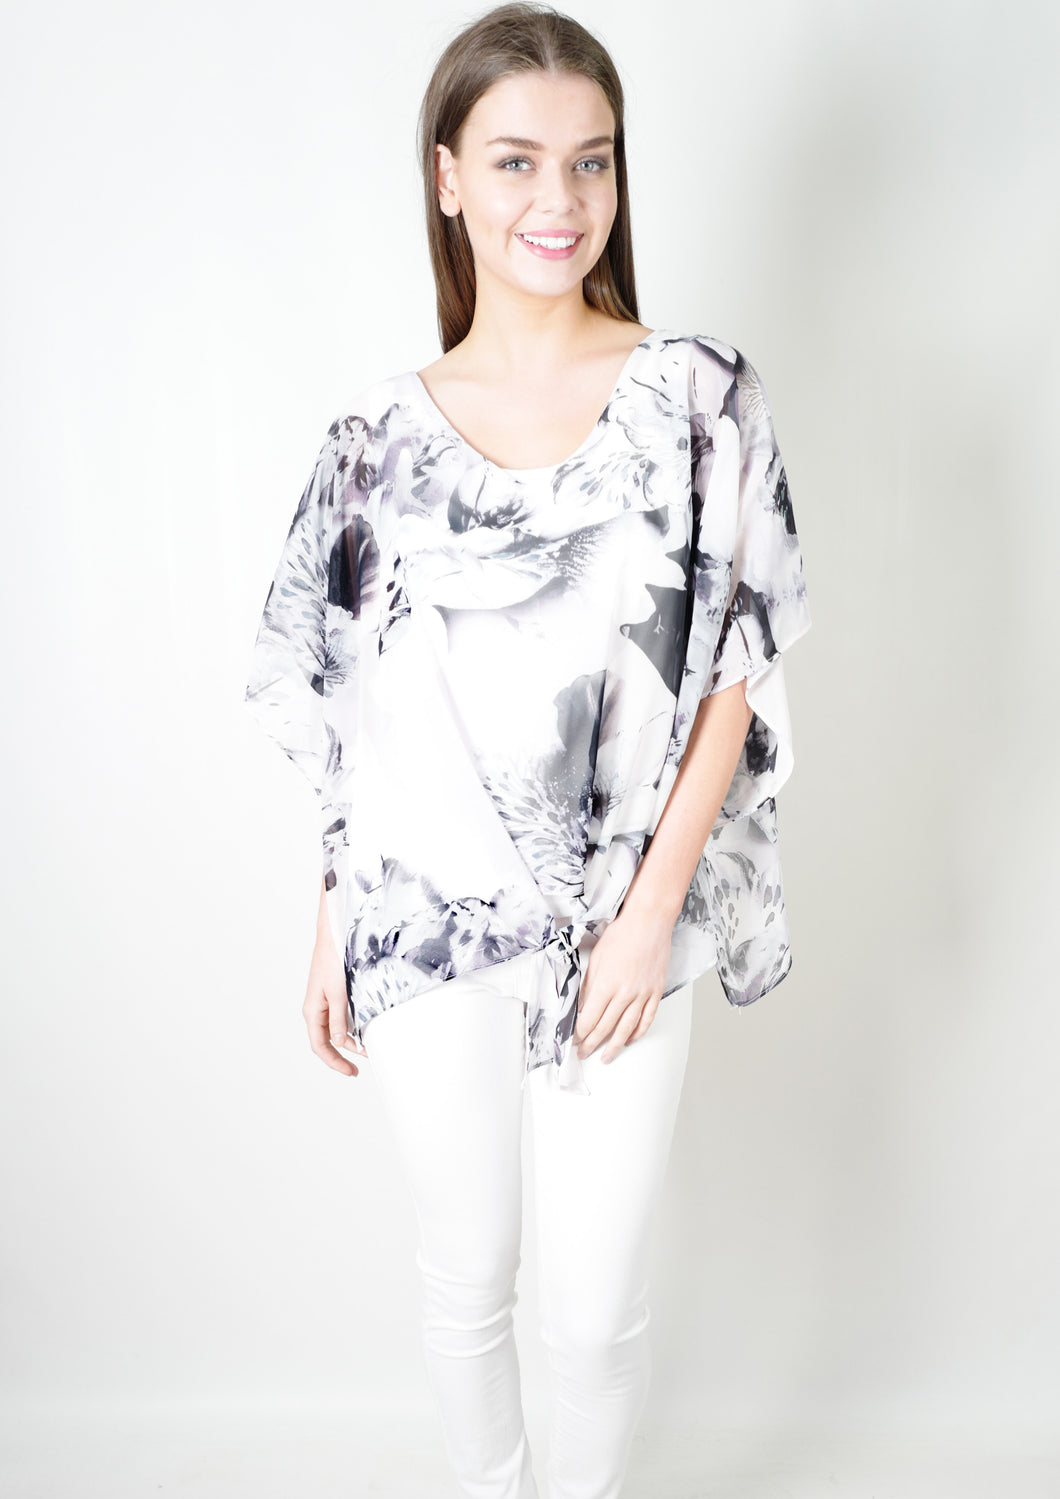 WA2138-1NC Grey Floral Flowy Top (Pack) New Arrival